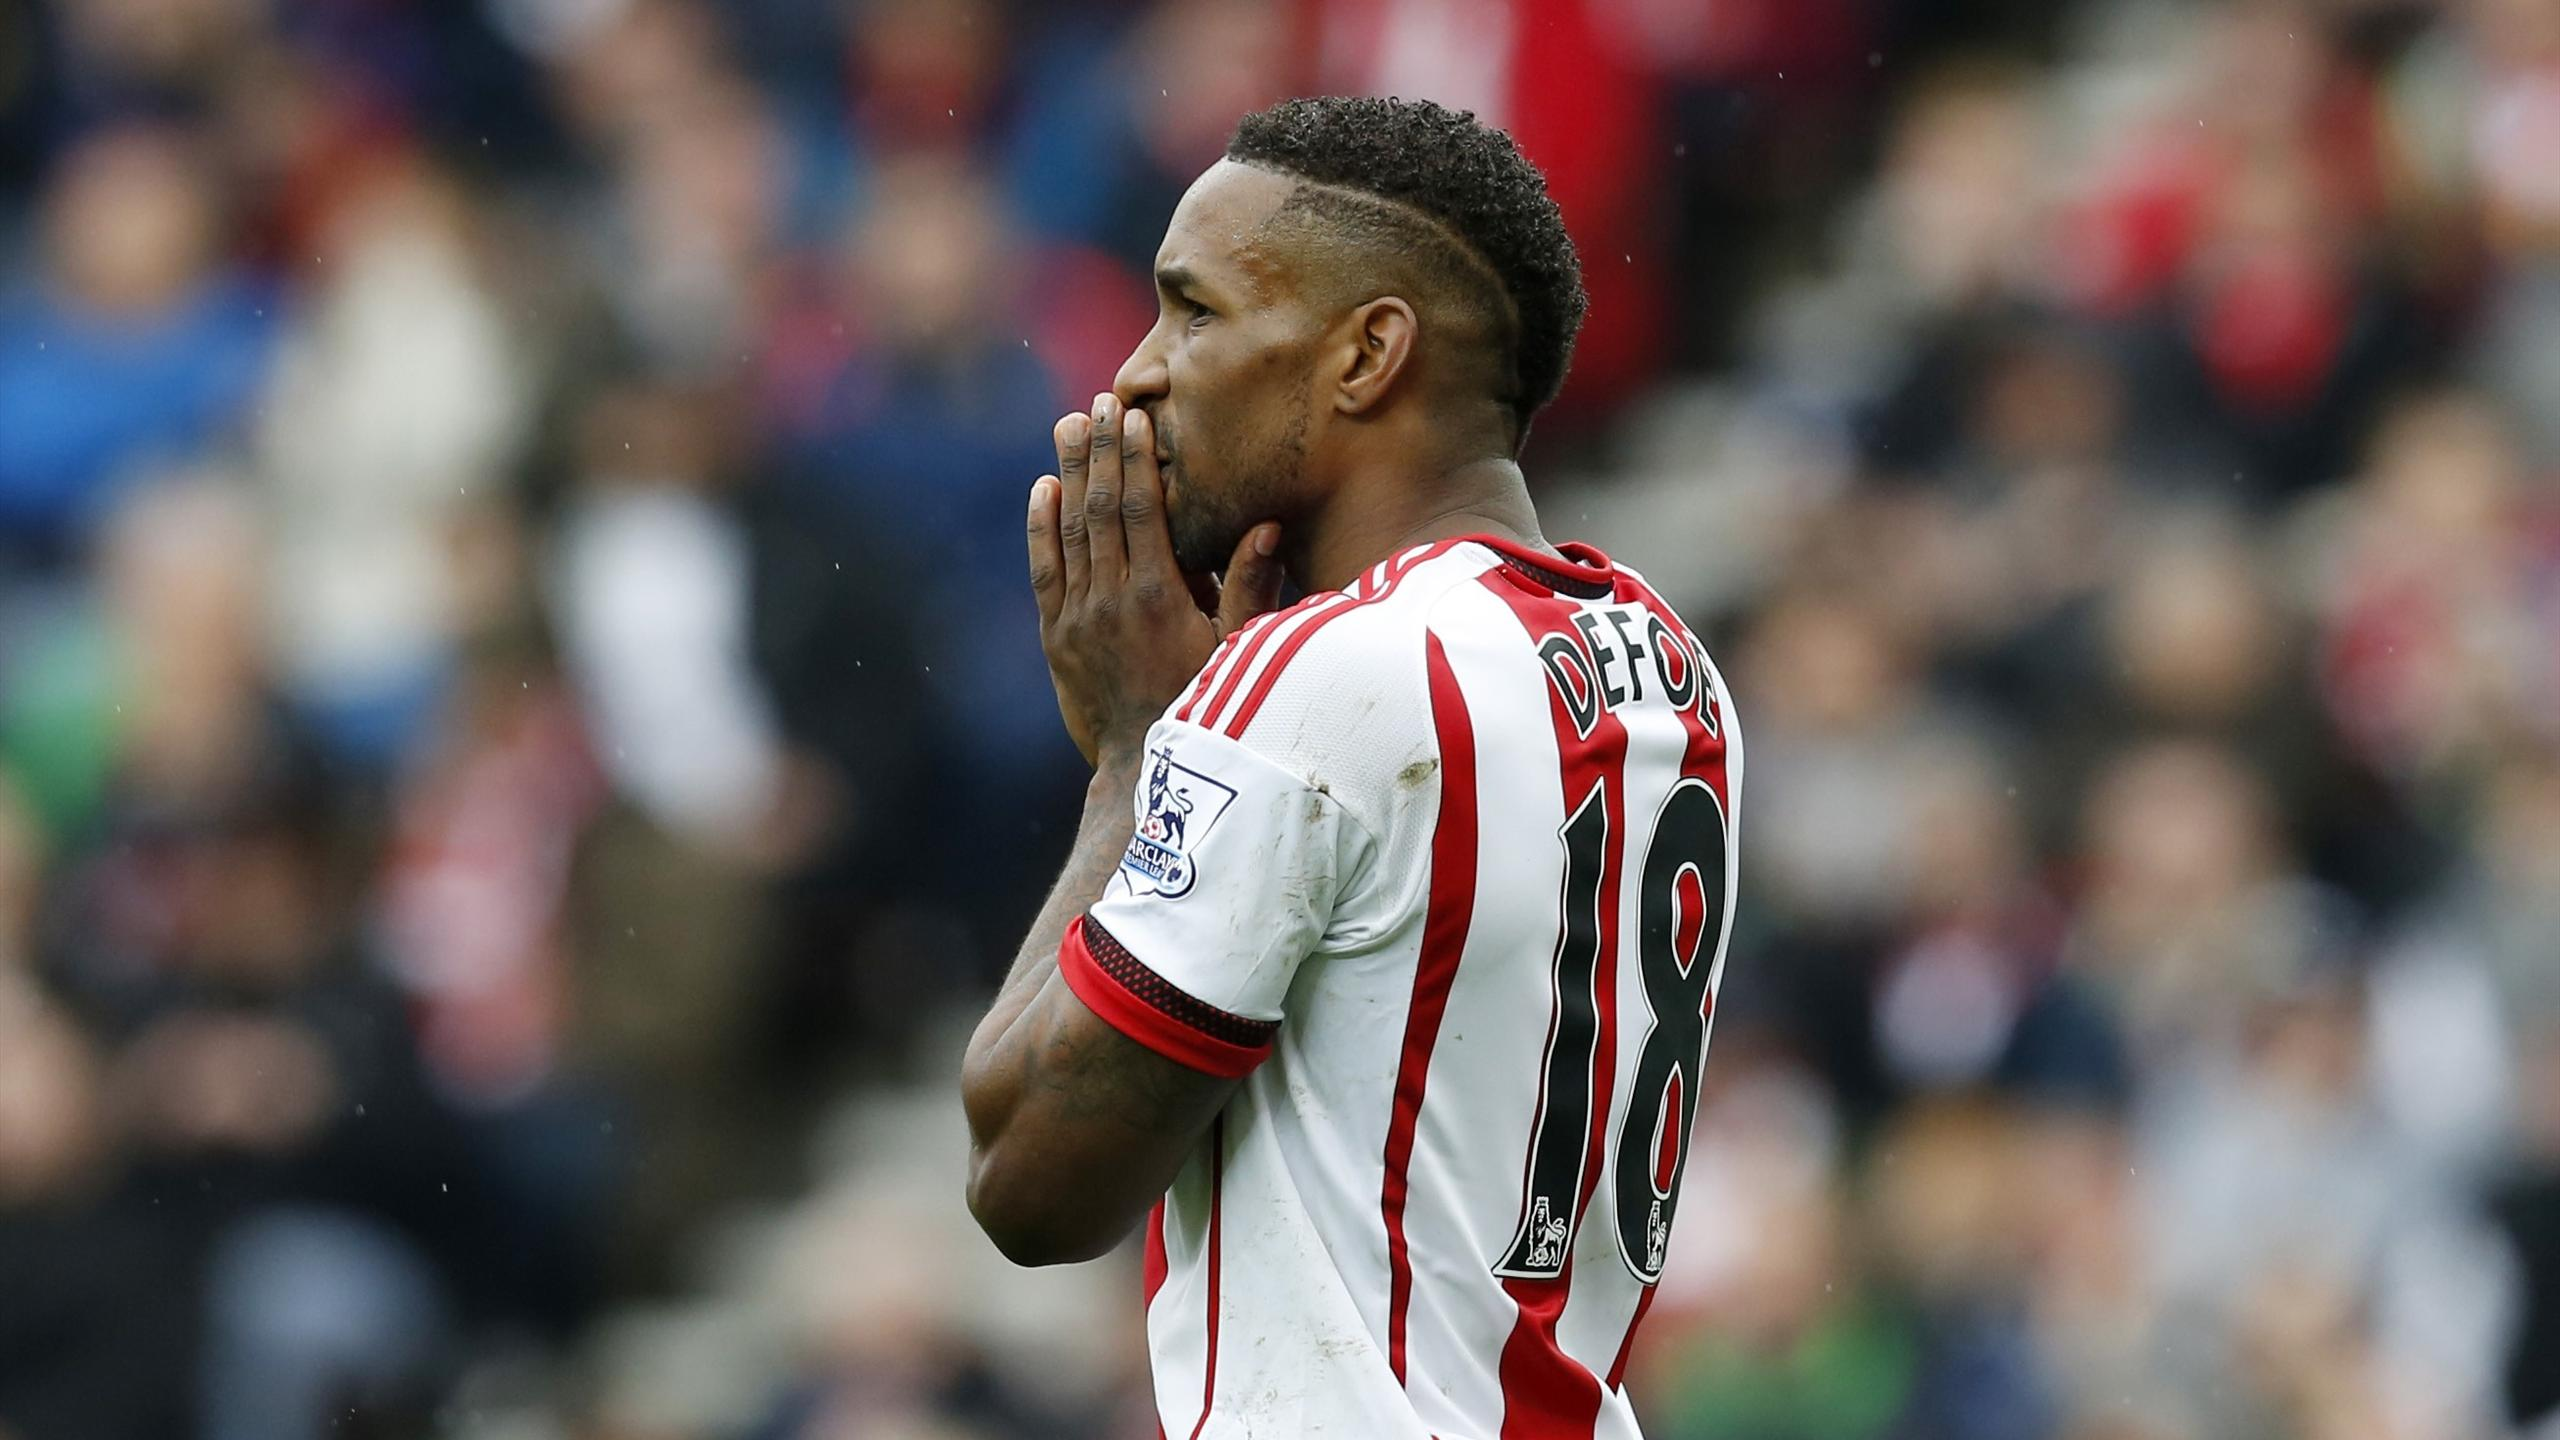 Sunderland's Jermain Defoe looks dejected